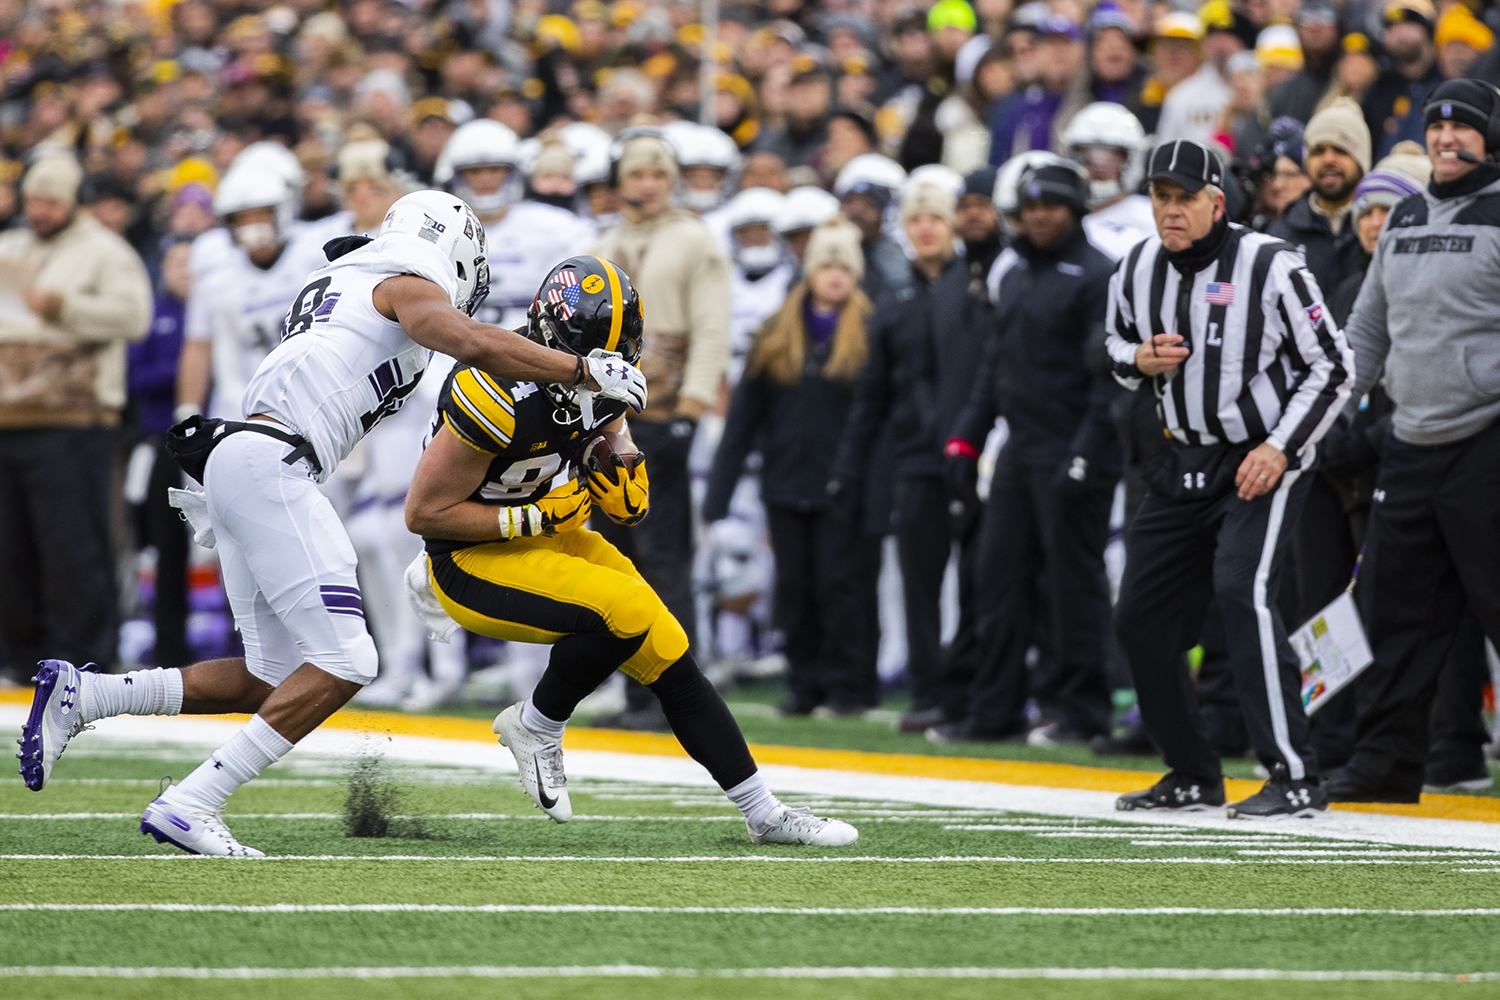 Iowa+wide+receiver+Nick+Easley+carries+the+ball+during+the+Iowa%2FNorthwestern+football+game+at+Kinnick+Stadium+on+Saturday%2C+November+10%2C+2018.+The+Wildcats+defeated+the+Hawkeyes%2C+14-10.+%28Lily+Smith%2FThe+Daily+Iowan%29